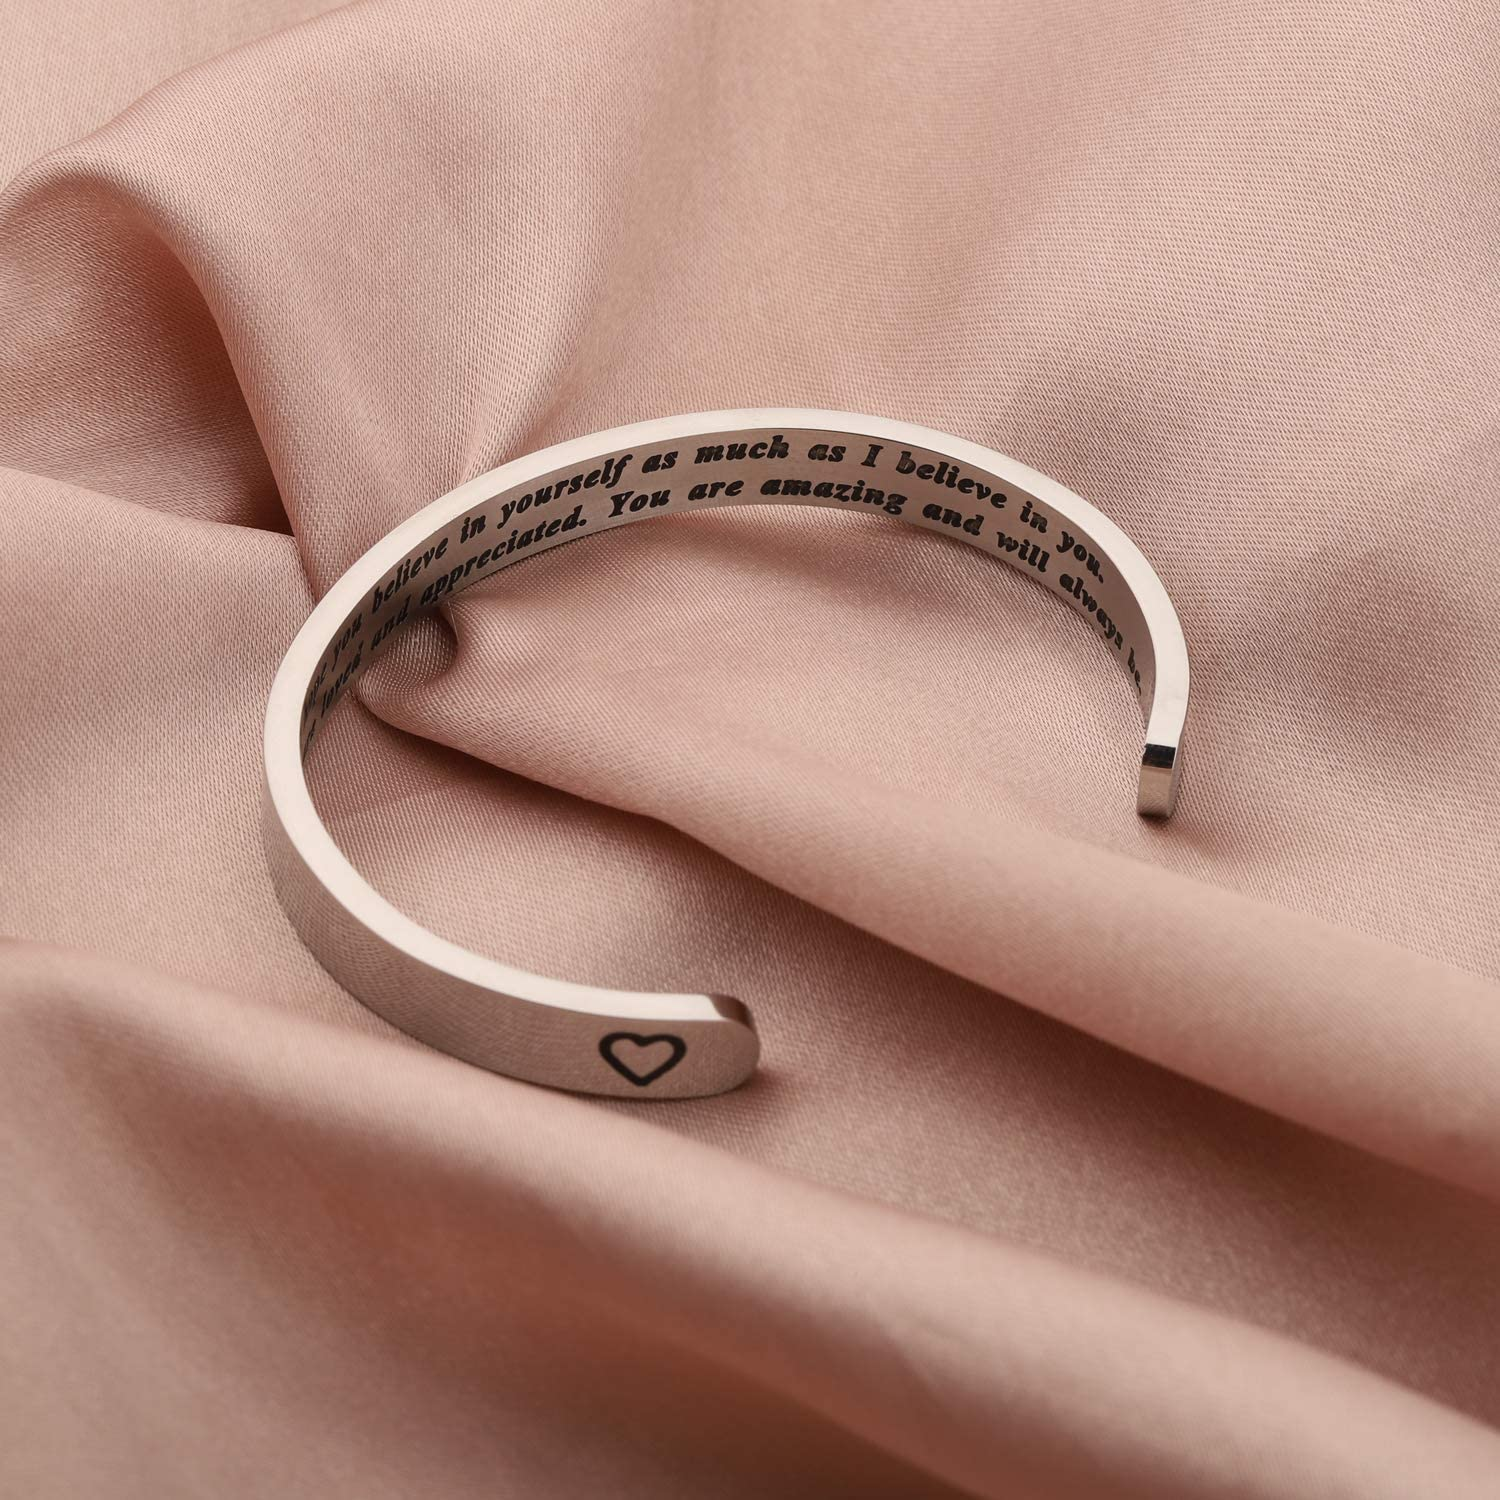 Gzrlyf To My Daughter Cuff Bracelet I Hope You Believe in Yourself as much as I Believe in You